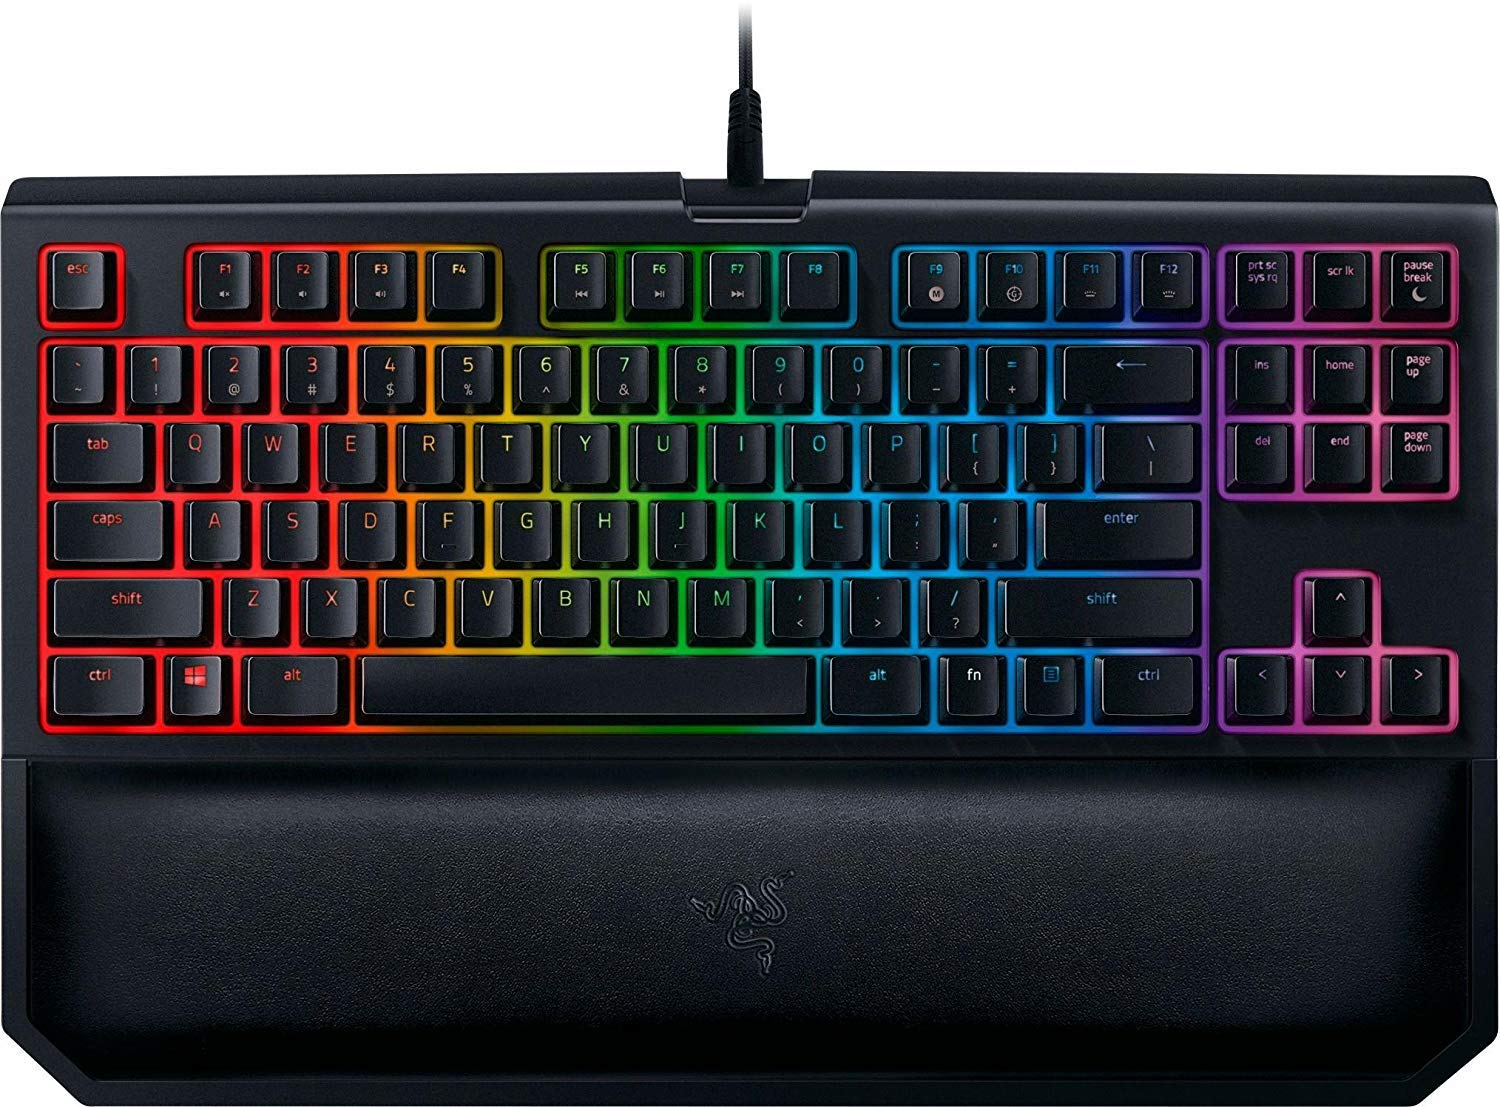 914d03dda24 ... Gaming Keyboard - [Matte Black]: Yellow Key Switches - Linear & Silent  - Chroma RGB Lighting - Magnetic Wrist Rest - Programmable Macro  Functionality